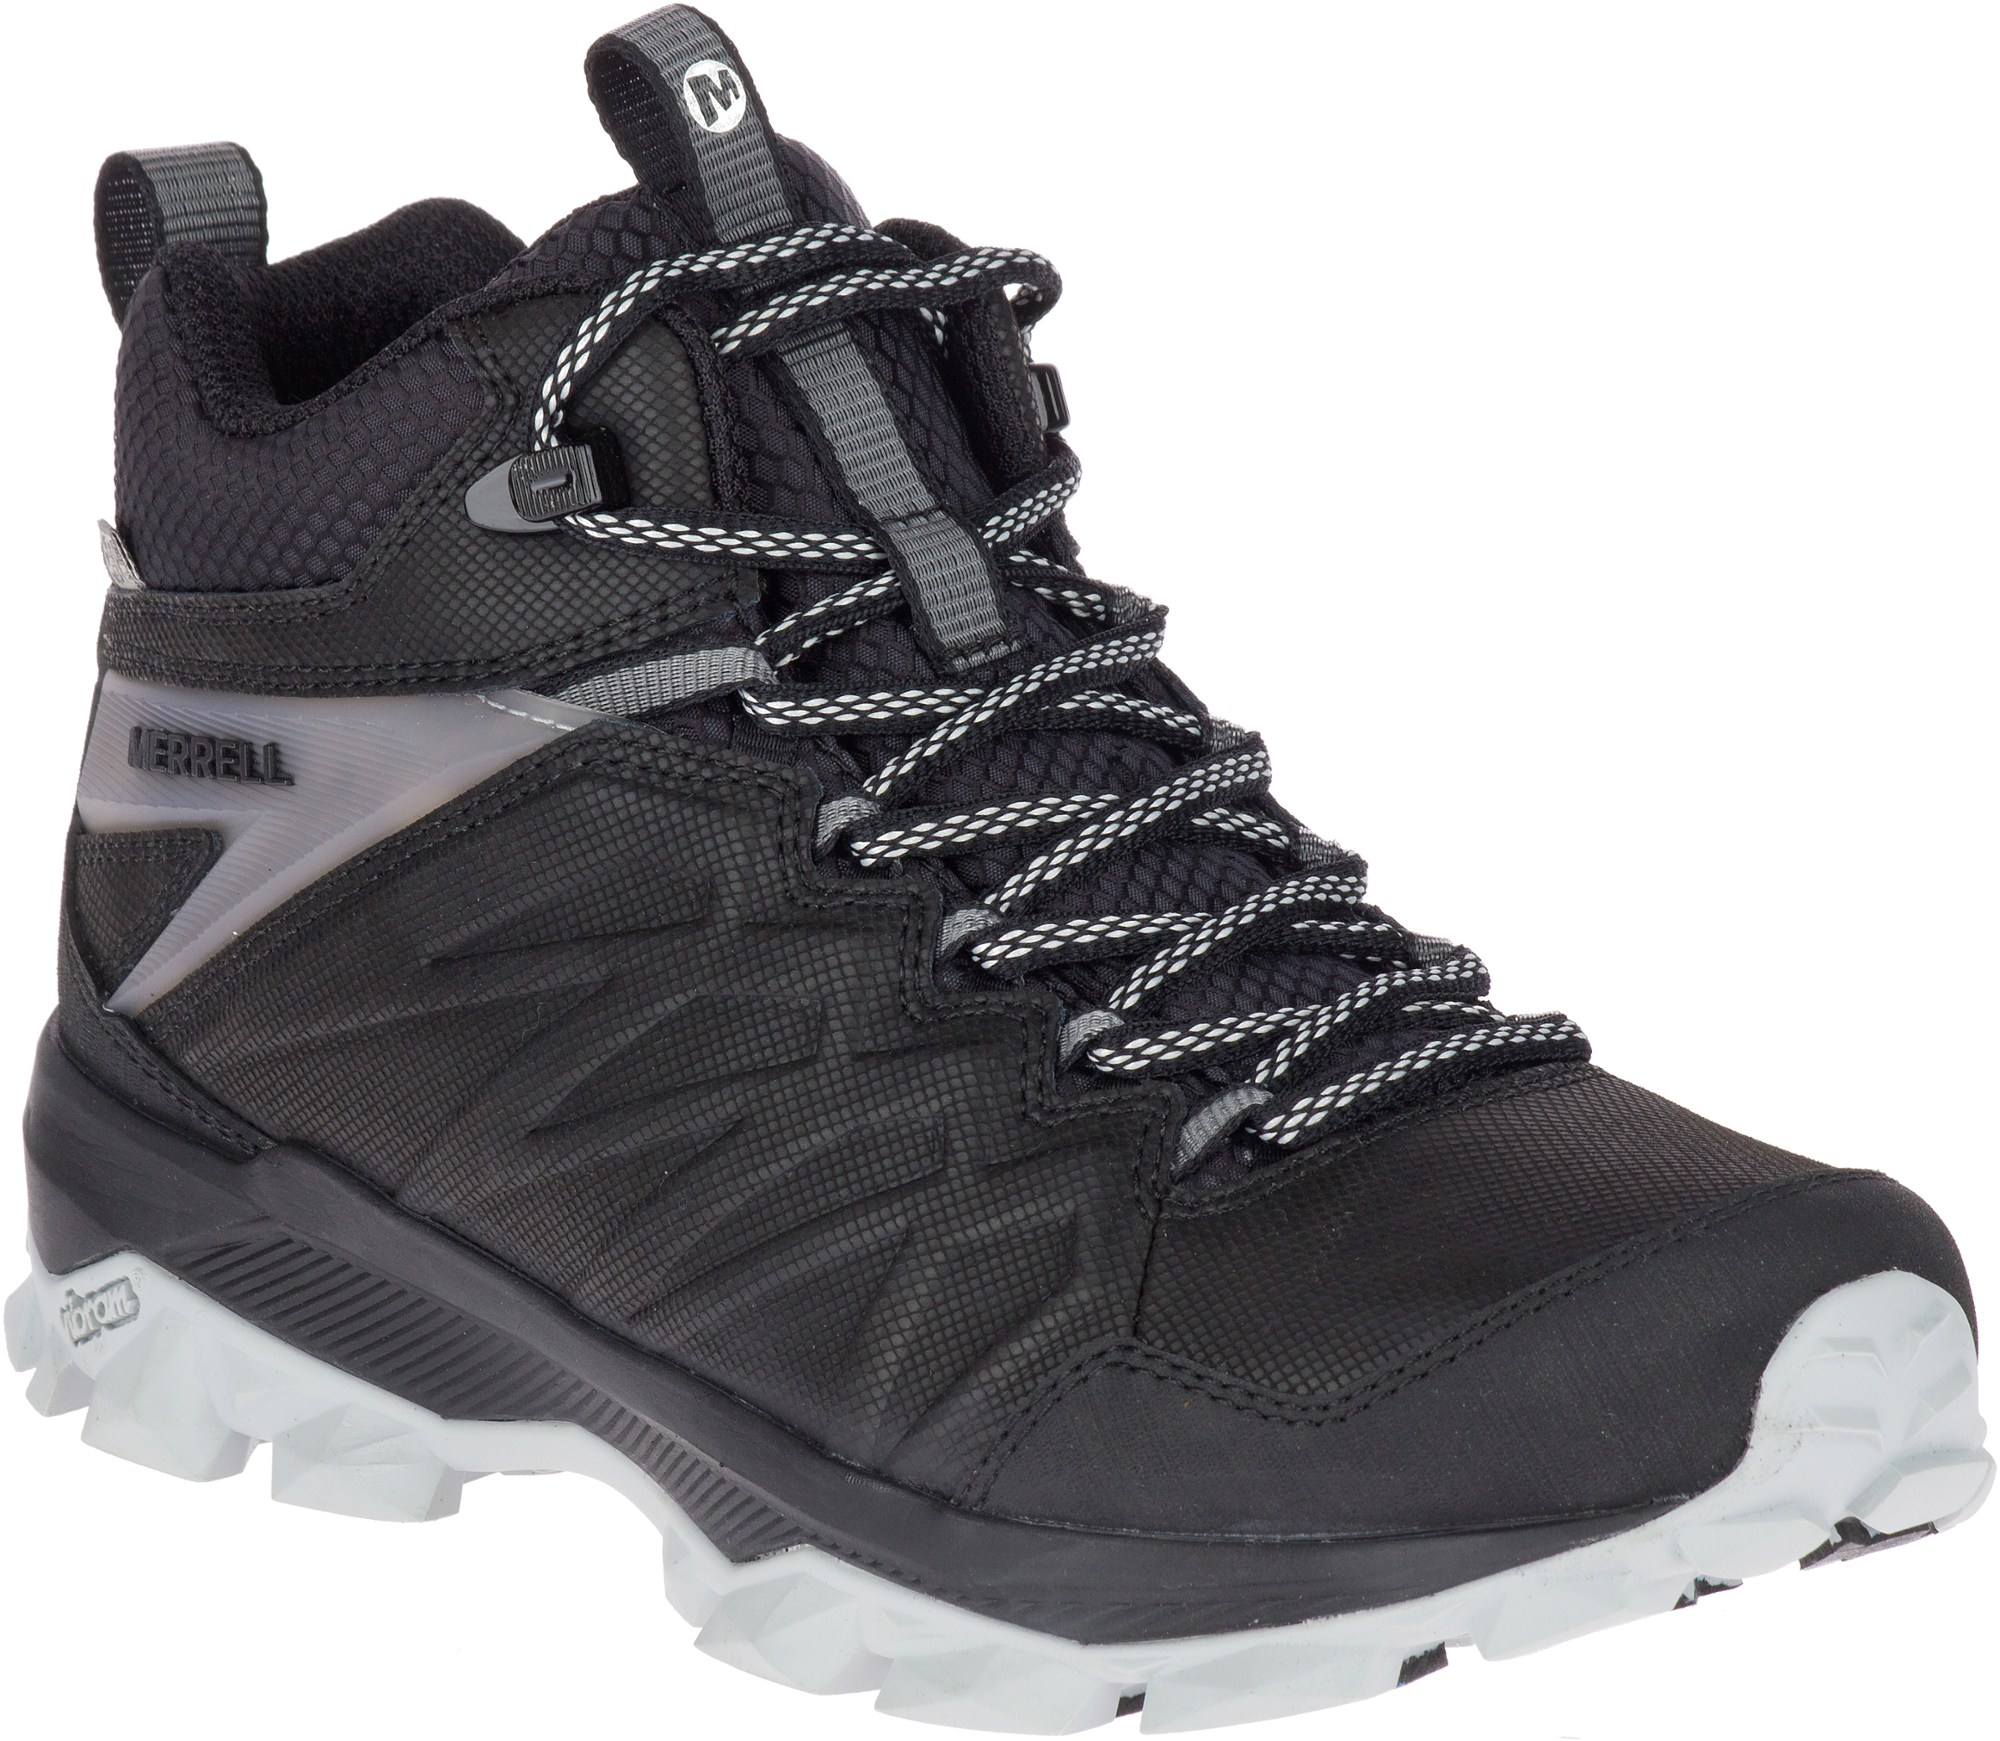 Merrell Thermo Freeze Waterproof Winter Hiking Boots - Women's